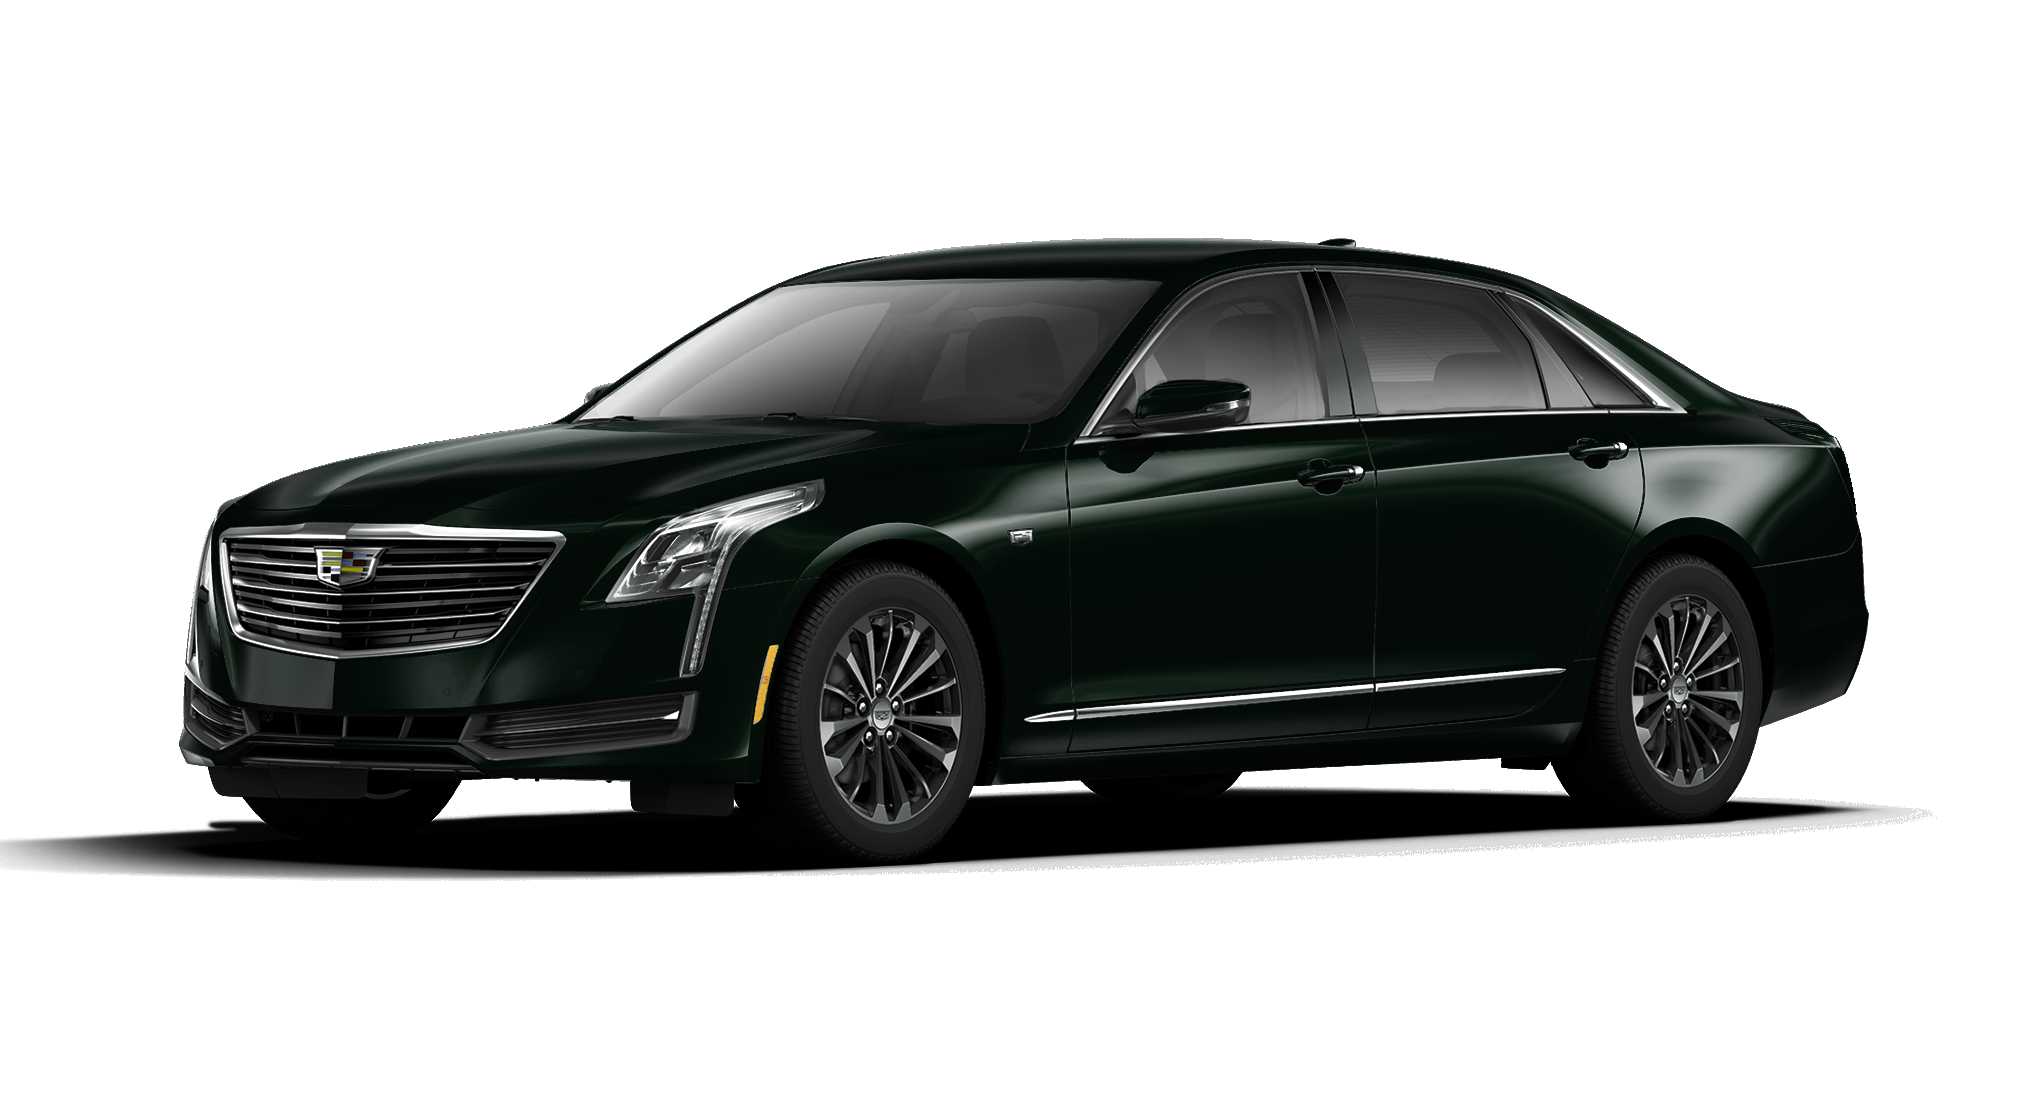 2017 Cadillac CT6 Dark Emerald